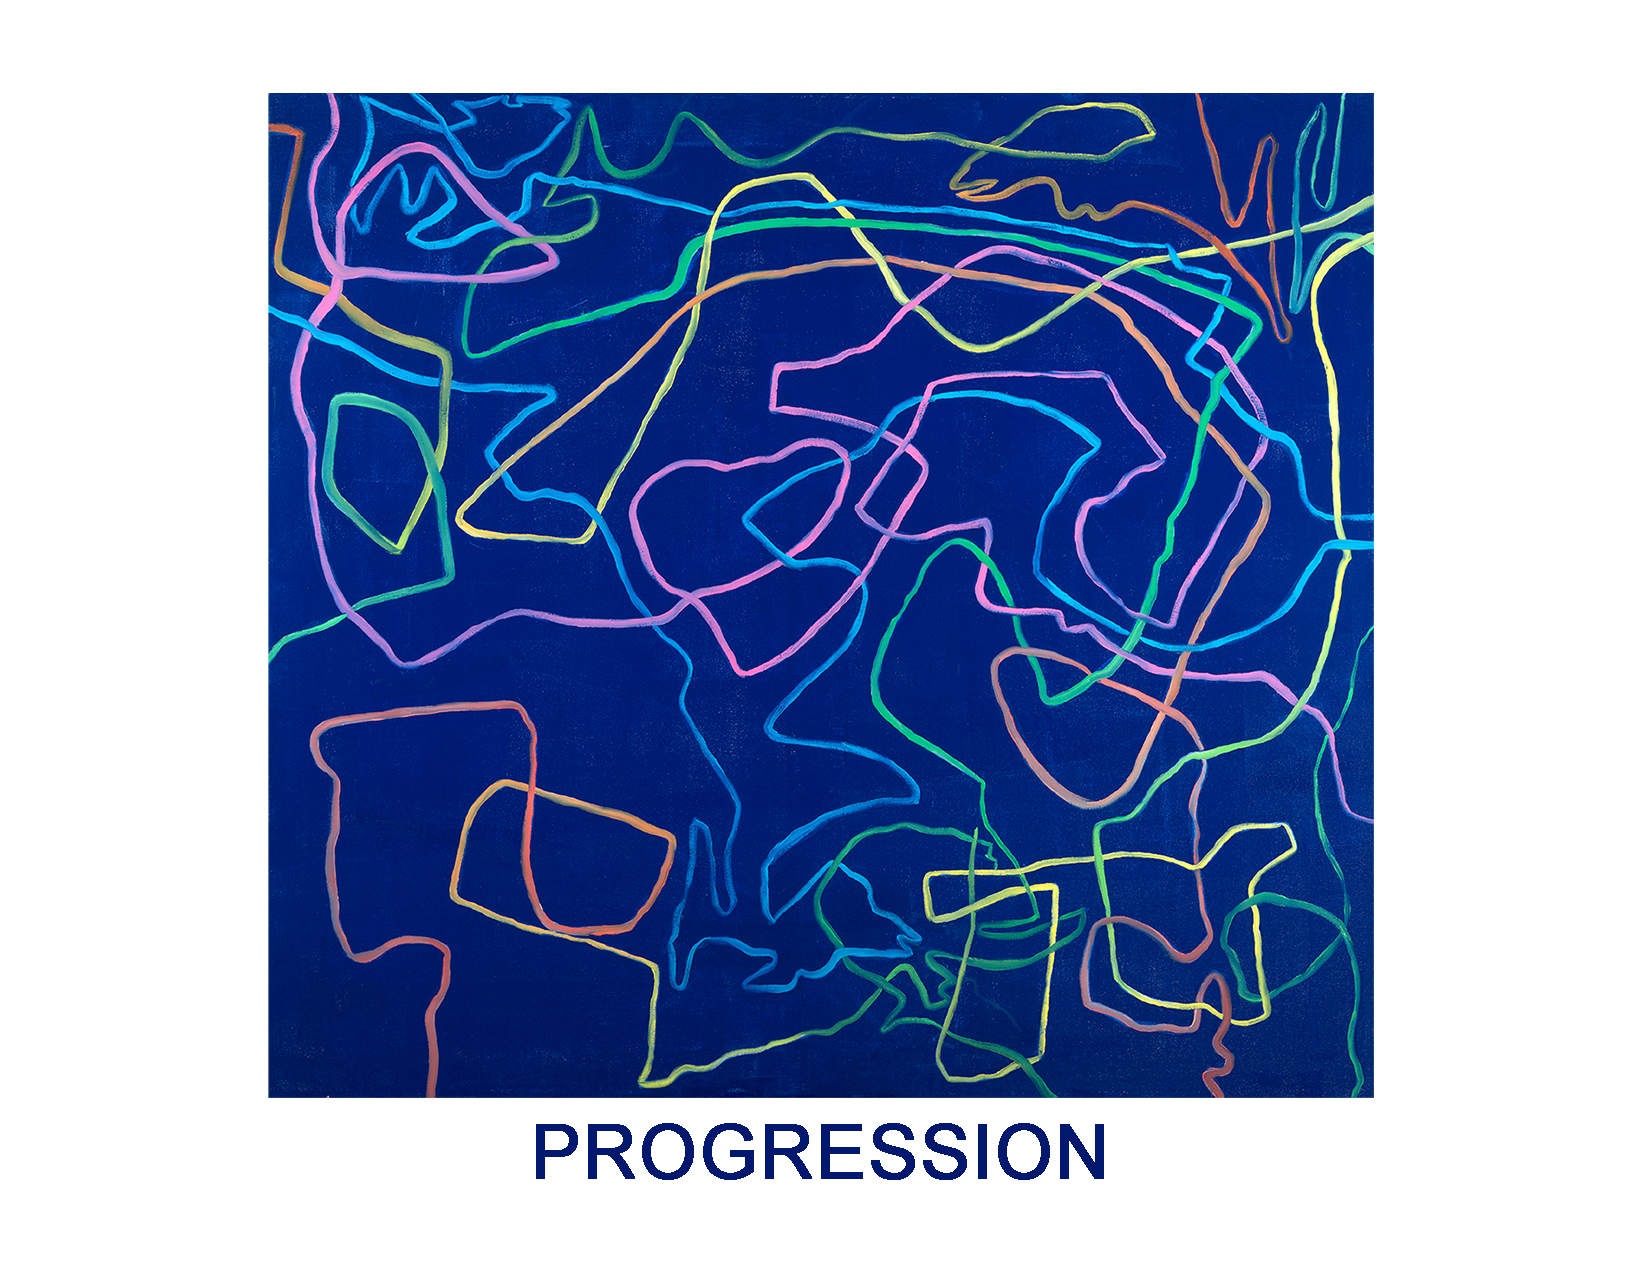 """Progression,"" an exhibition of my new 2017 work, will be on view at the Crane Arts building through May 28.  Hours are Wednesday through Saturday, noon to 6 pm and Second Thursday, May 11 from 6-9 pm.  You can also contact me to schedule a private viewing during closed hours.  I hope to see you soon."